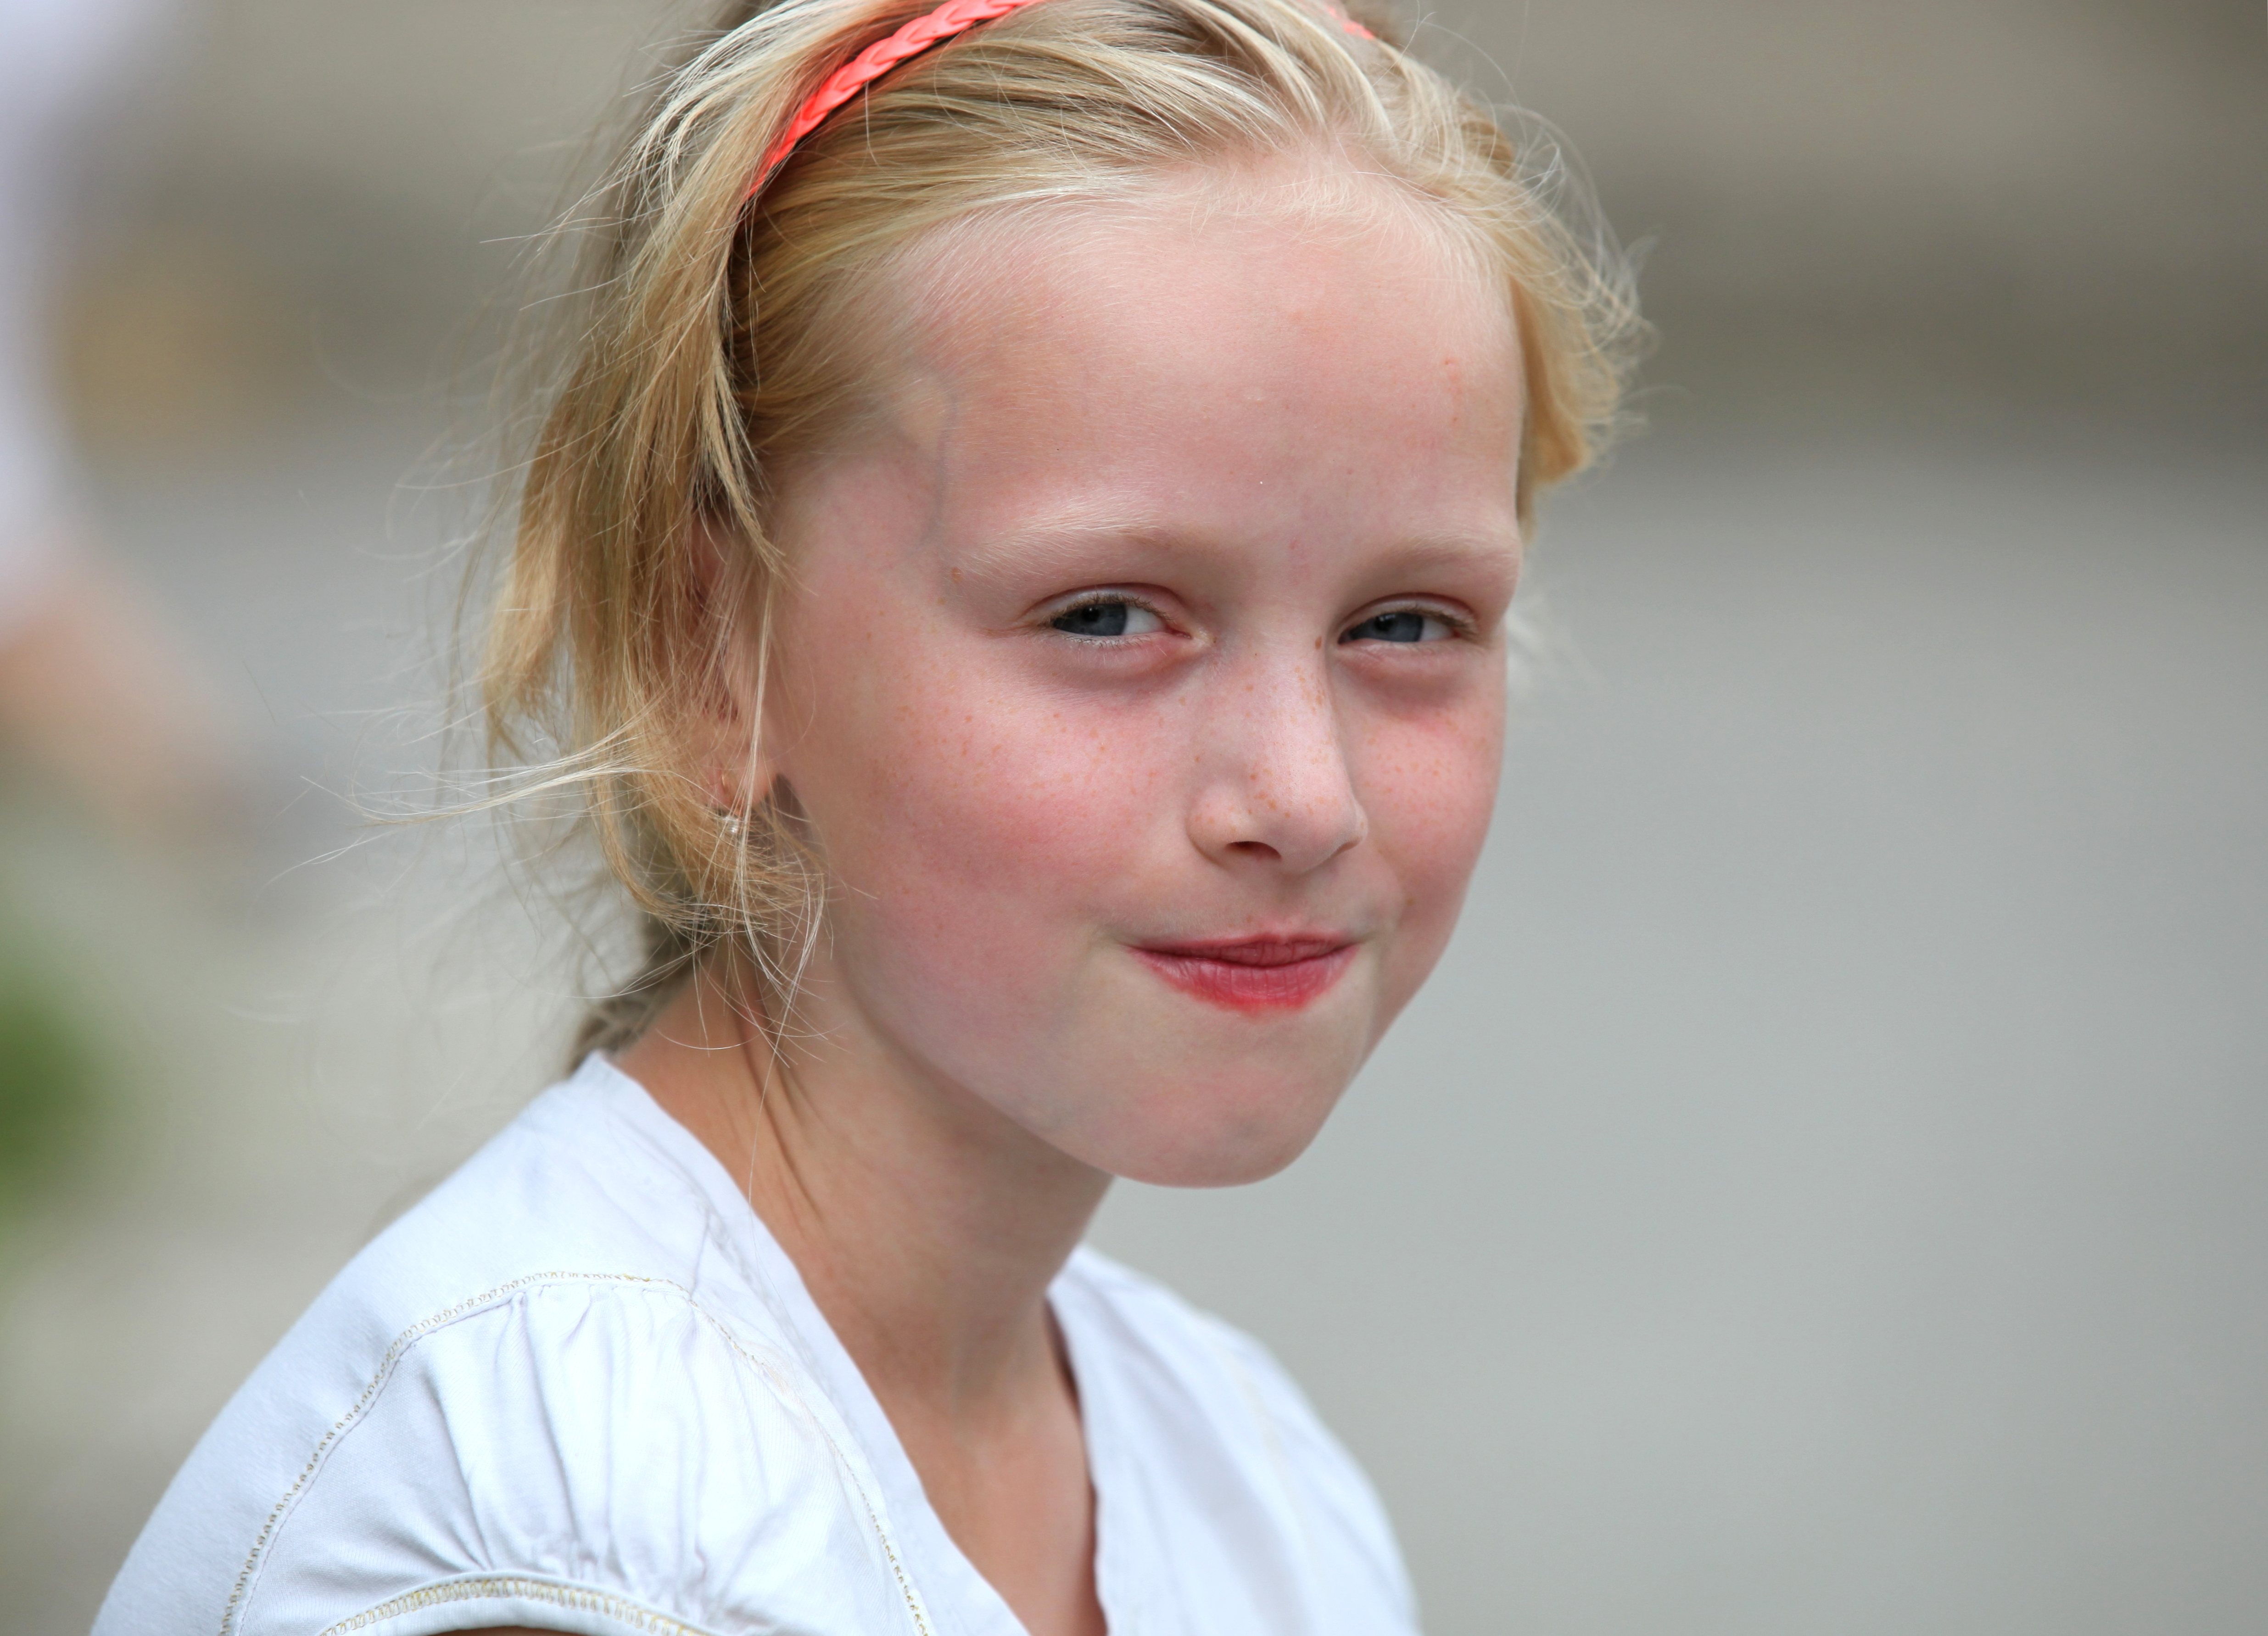 a really cute young blond charming girl (a Catholic Christian) in a Christian camp in July 2013, picture 4/8